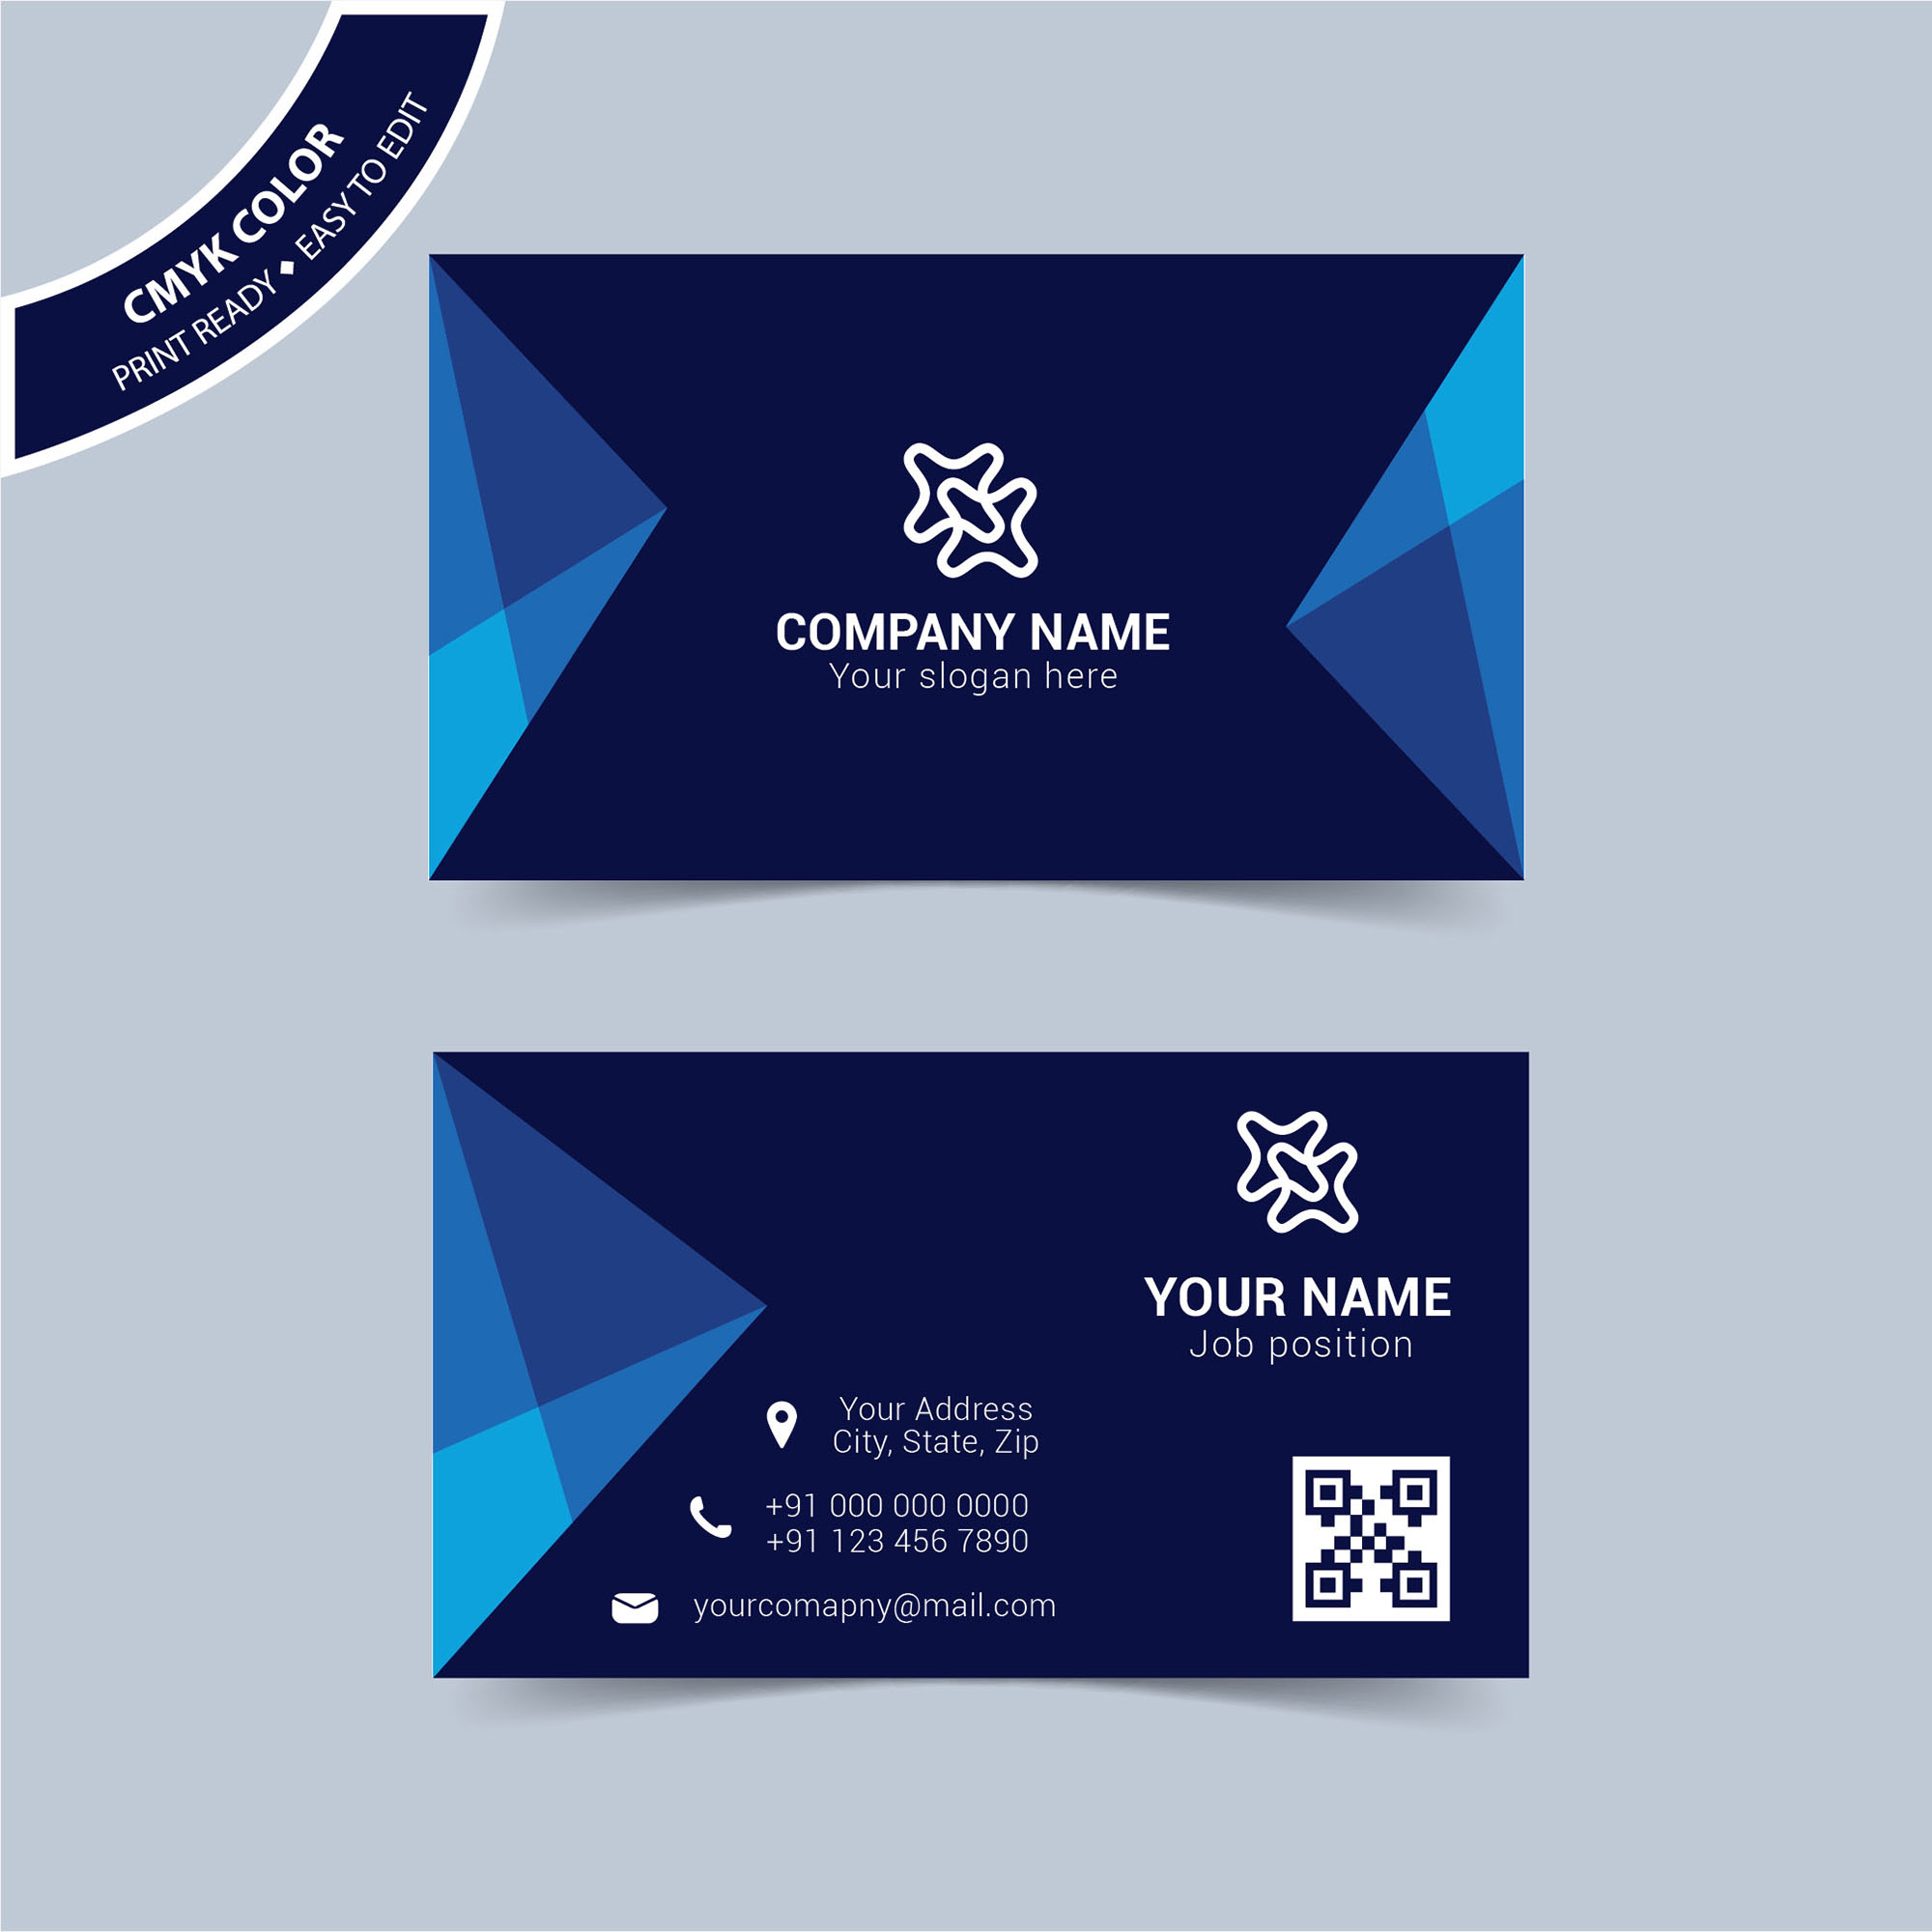 Modern blue business card template free download wisxi business card business cards business card design business card template design templates flashek Gallery